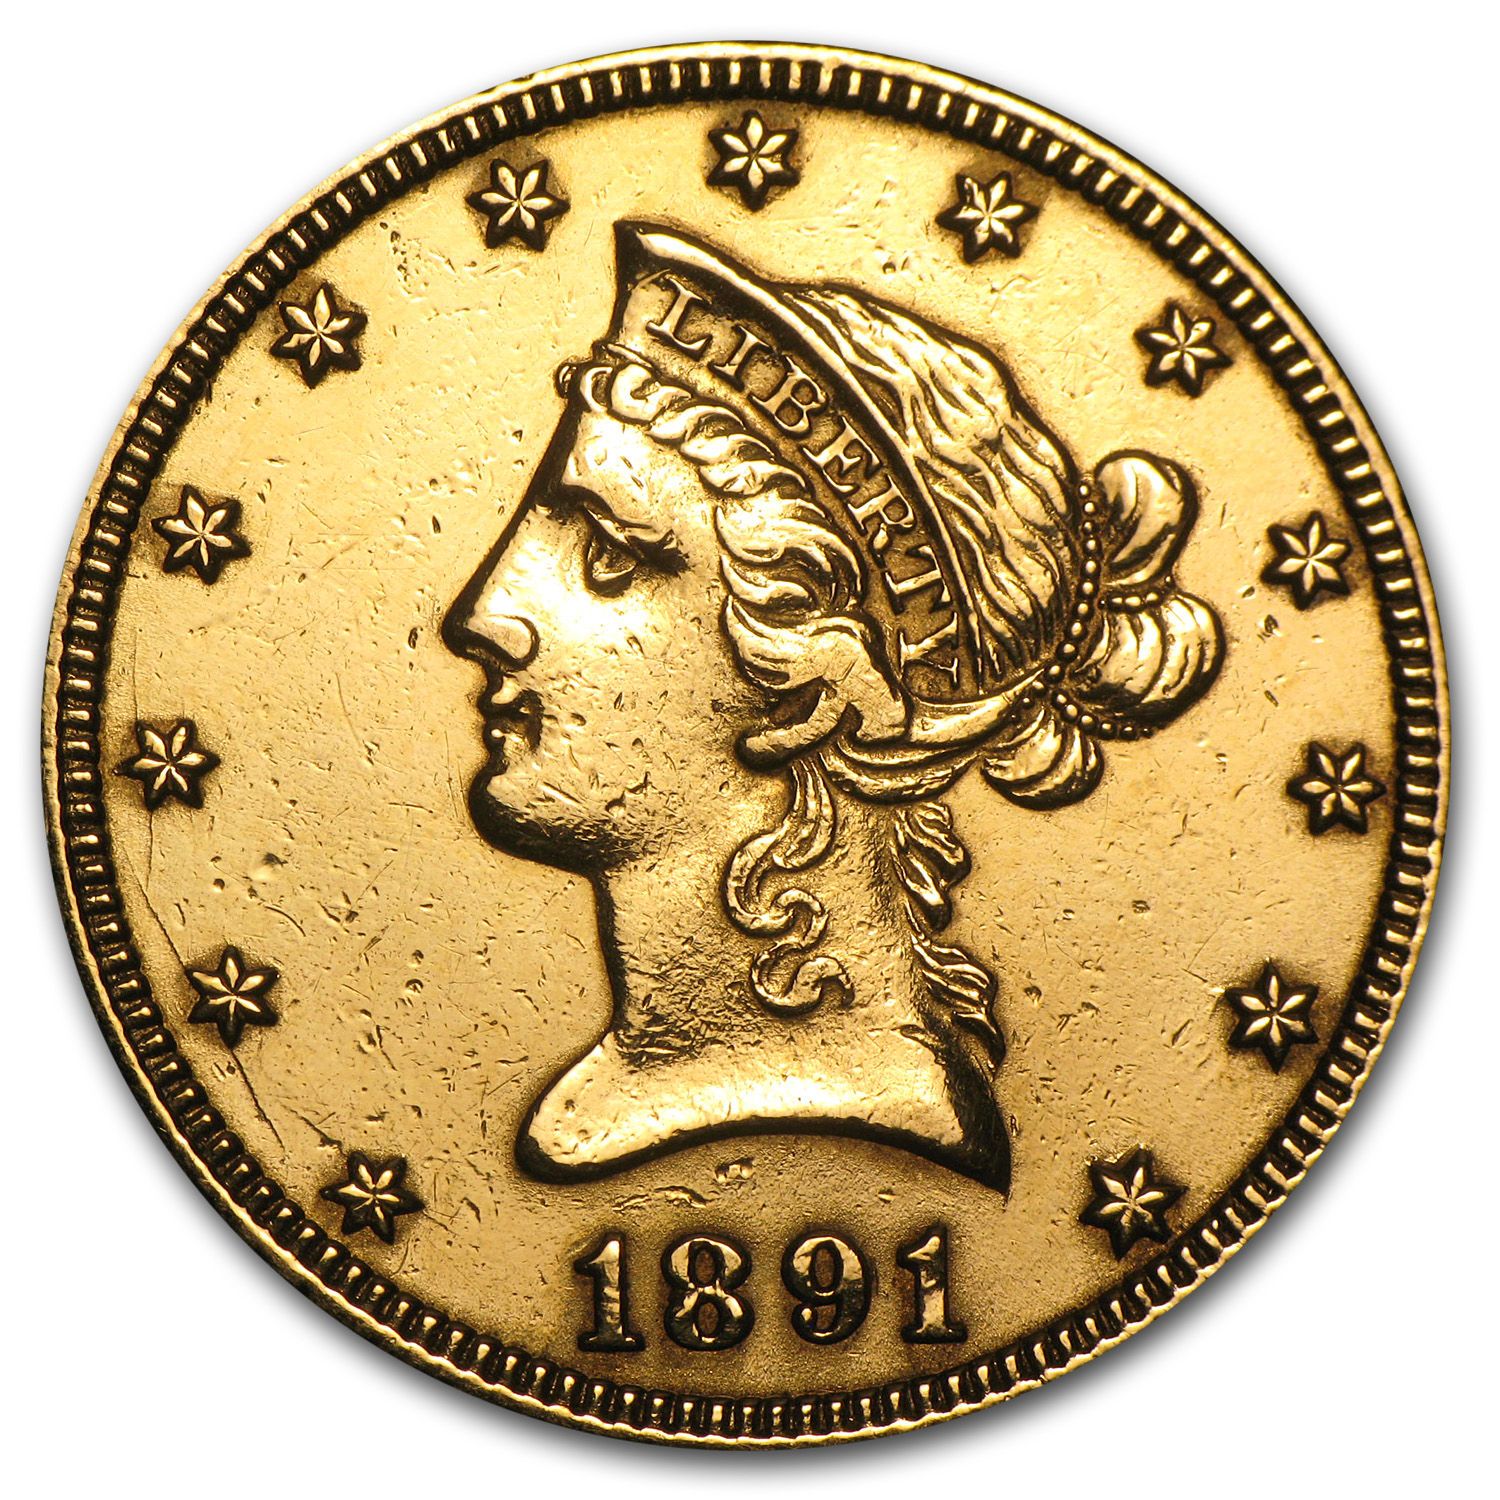 1891-CC $10 Liberty Gold Eagle - AU Details - (Scratched)